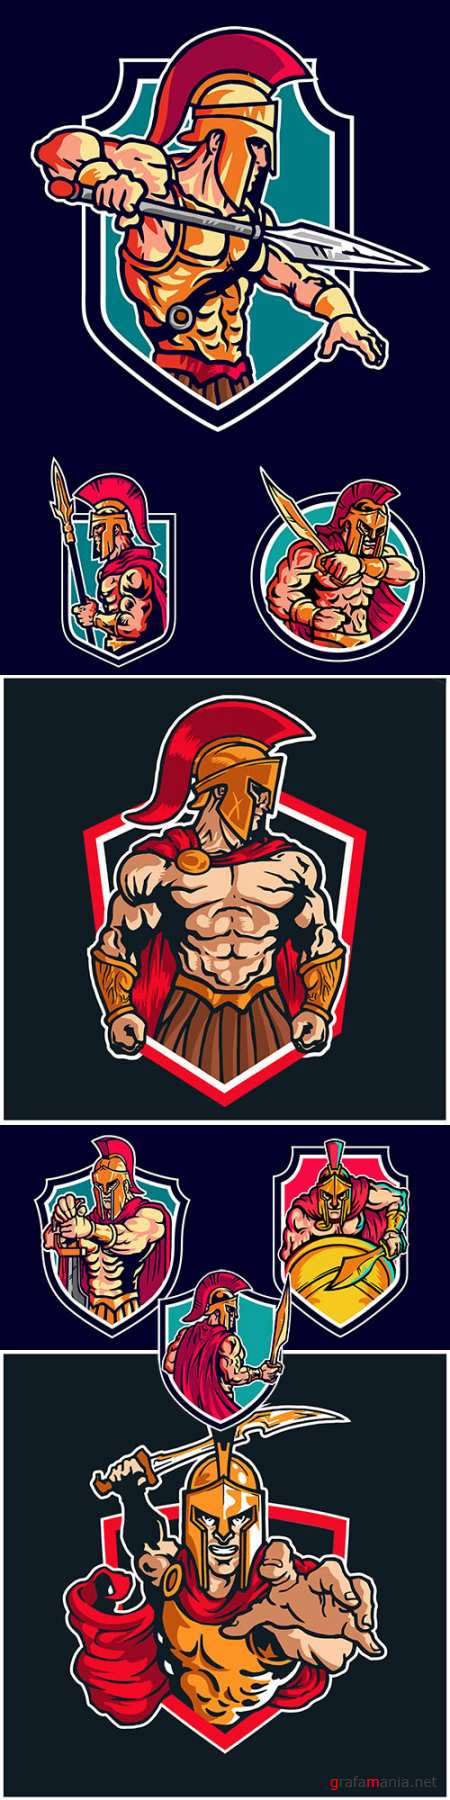 Spartan warrior vector logo mascot design